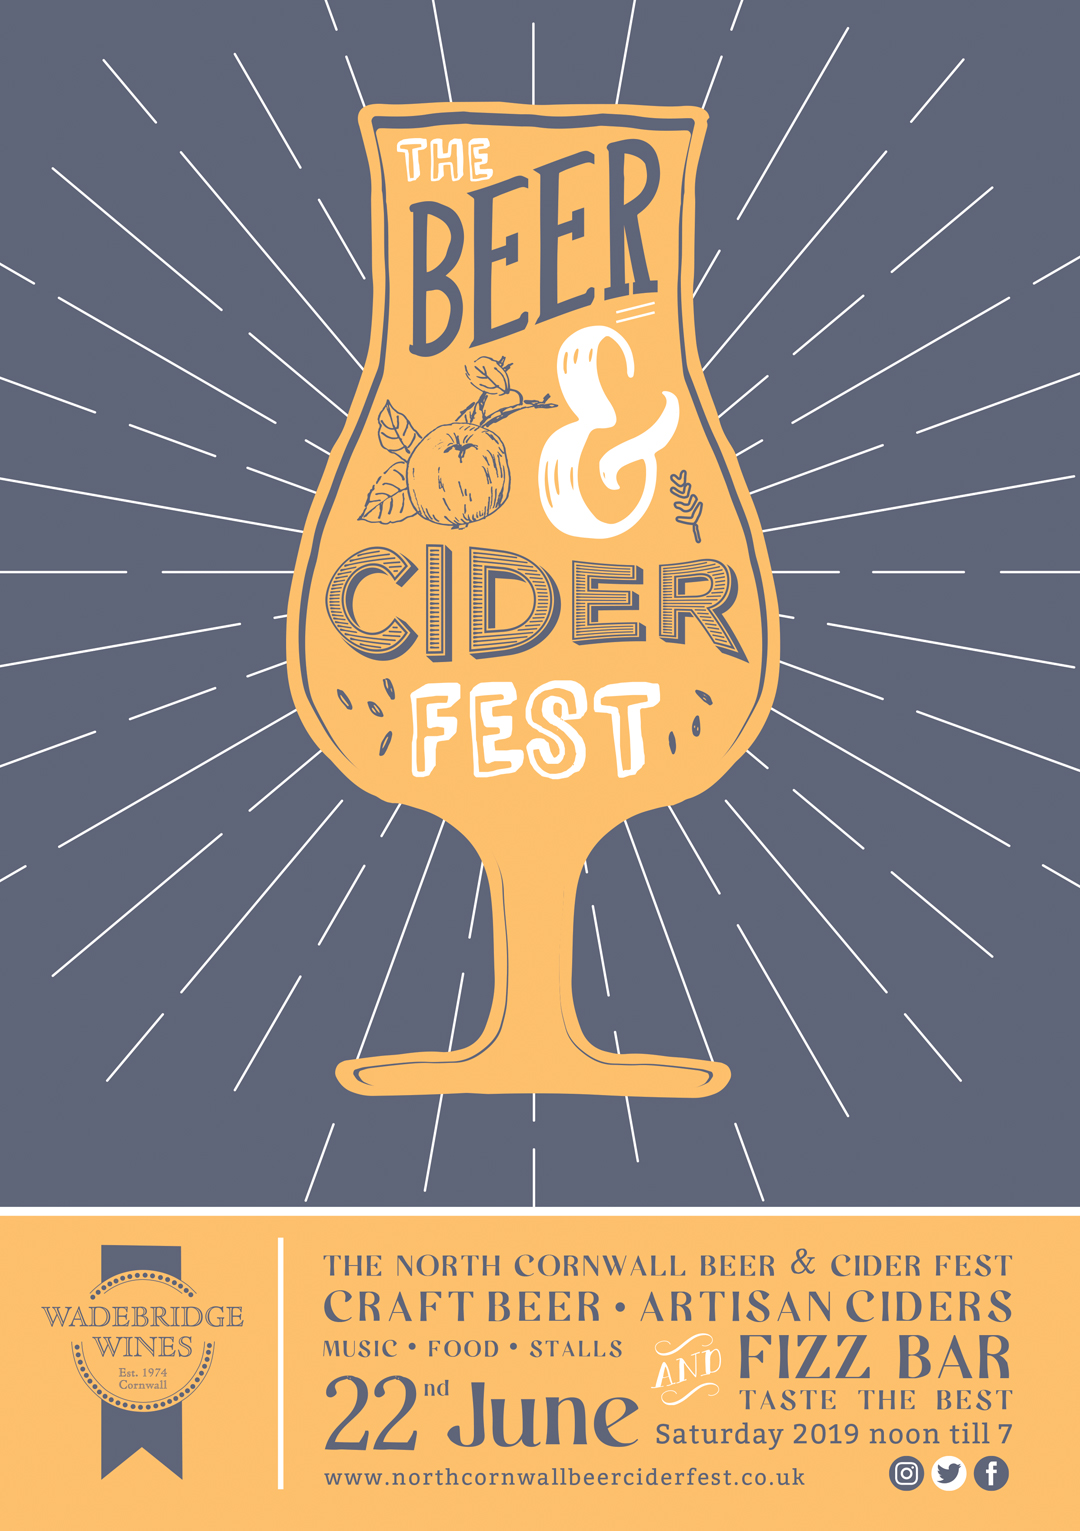 Poster design for the Wadebridge Wines Beer and Cider festival